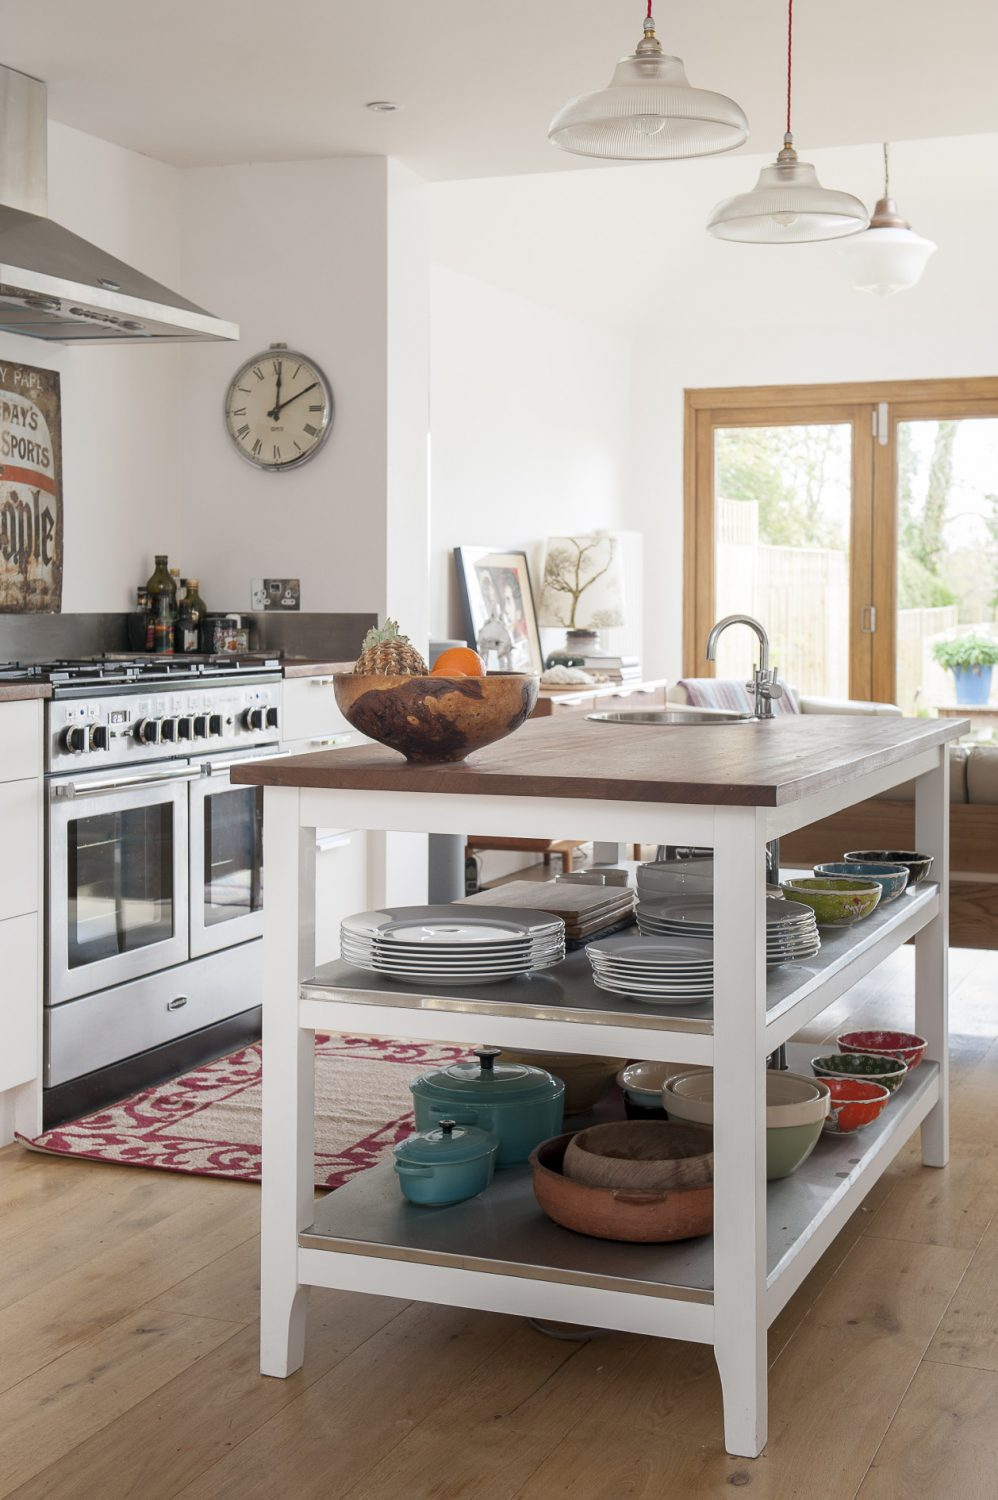 Being a caterer, Jen had very firm ideas of how she wanted the kitchen area to look and function so she designed the layout and then used Hastings craftsman Mark Tomlinson to make the units using Iroko wood sourced from school science labs